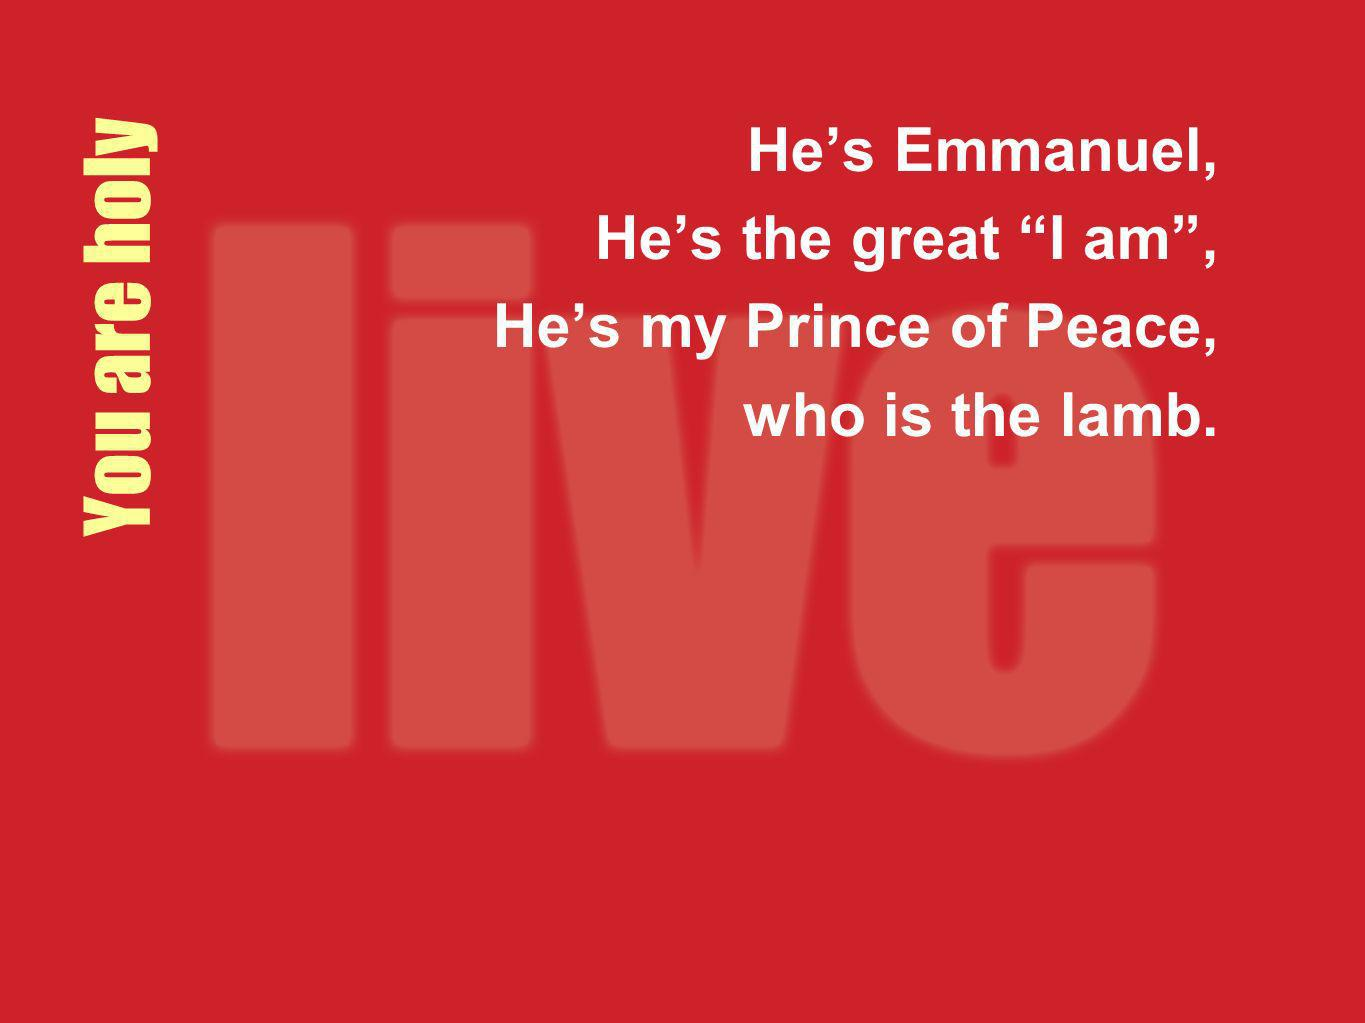 You are holy He's Emmanuel, He's the great I am ,